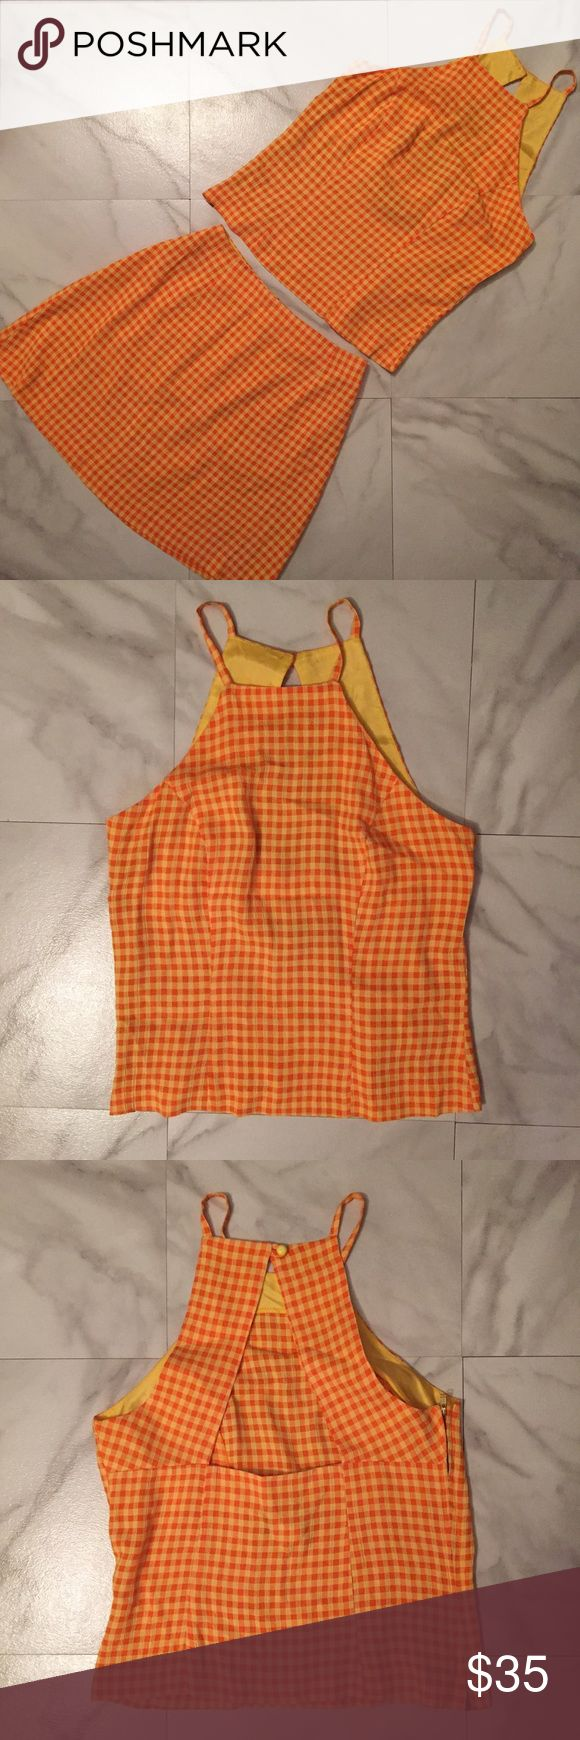 Adorable 90s Matching Orange Plaid Skirt Set! Amazing 90s orange and yellow gingham skirt and crop top set! Skirt and top both have zippers. The top is so adorable! It is higher neck, almost a halter style, then the back is open and has two panels that button together at the top! Is a juniors size 5, so it would fit a size 4-6! The waist measurement of the skirt is 25 inches! The length of the skirt is 16 inches! Please ask any questions and measure to ensure it will fit you! Vintage Skirts…